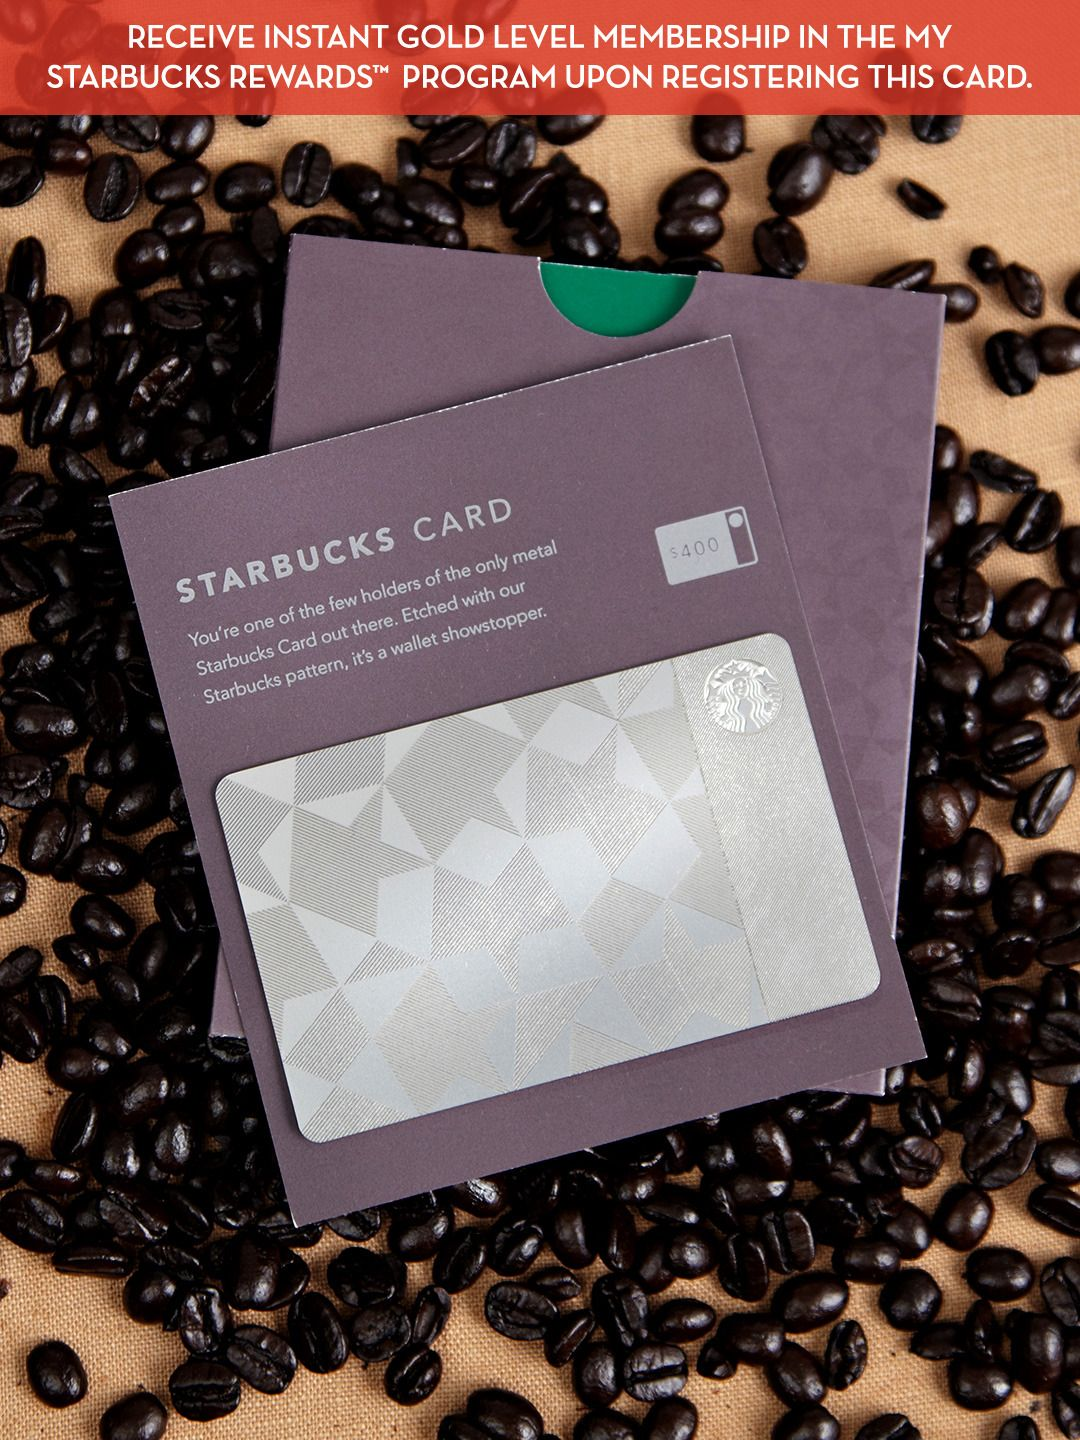 Limited Edition Metal Starbucks Card with Gold Level Membership ...